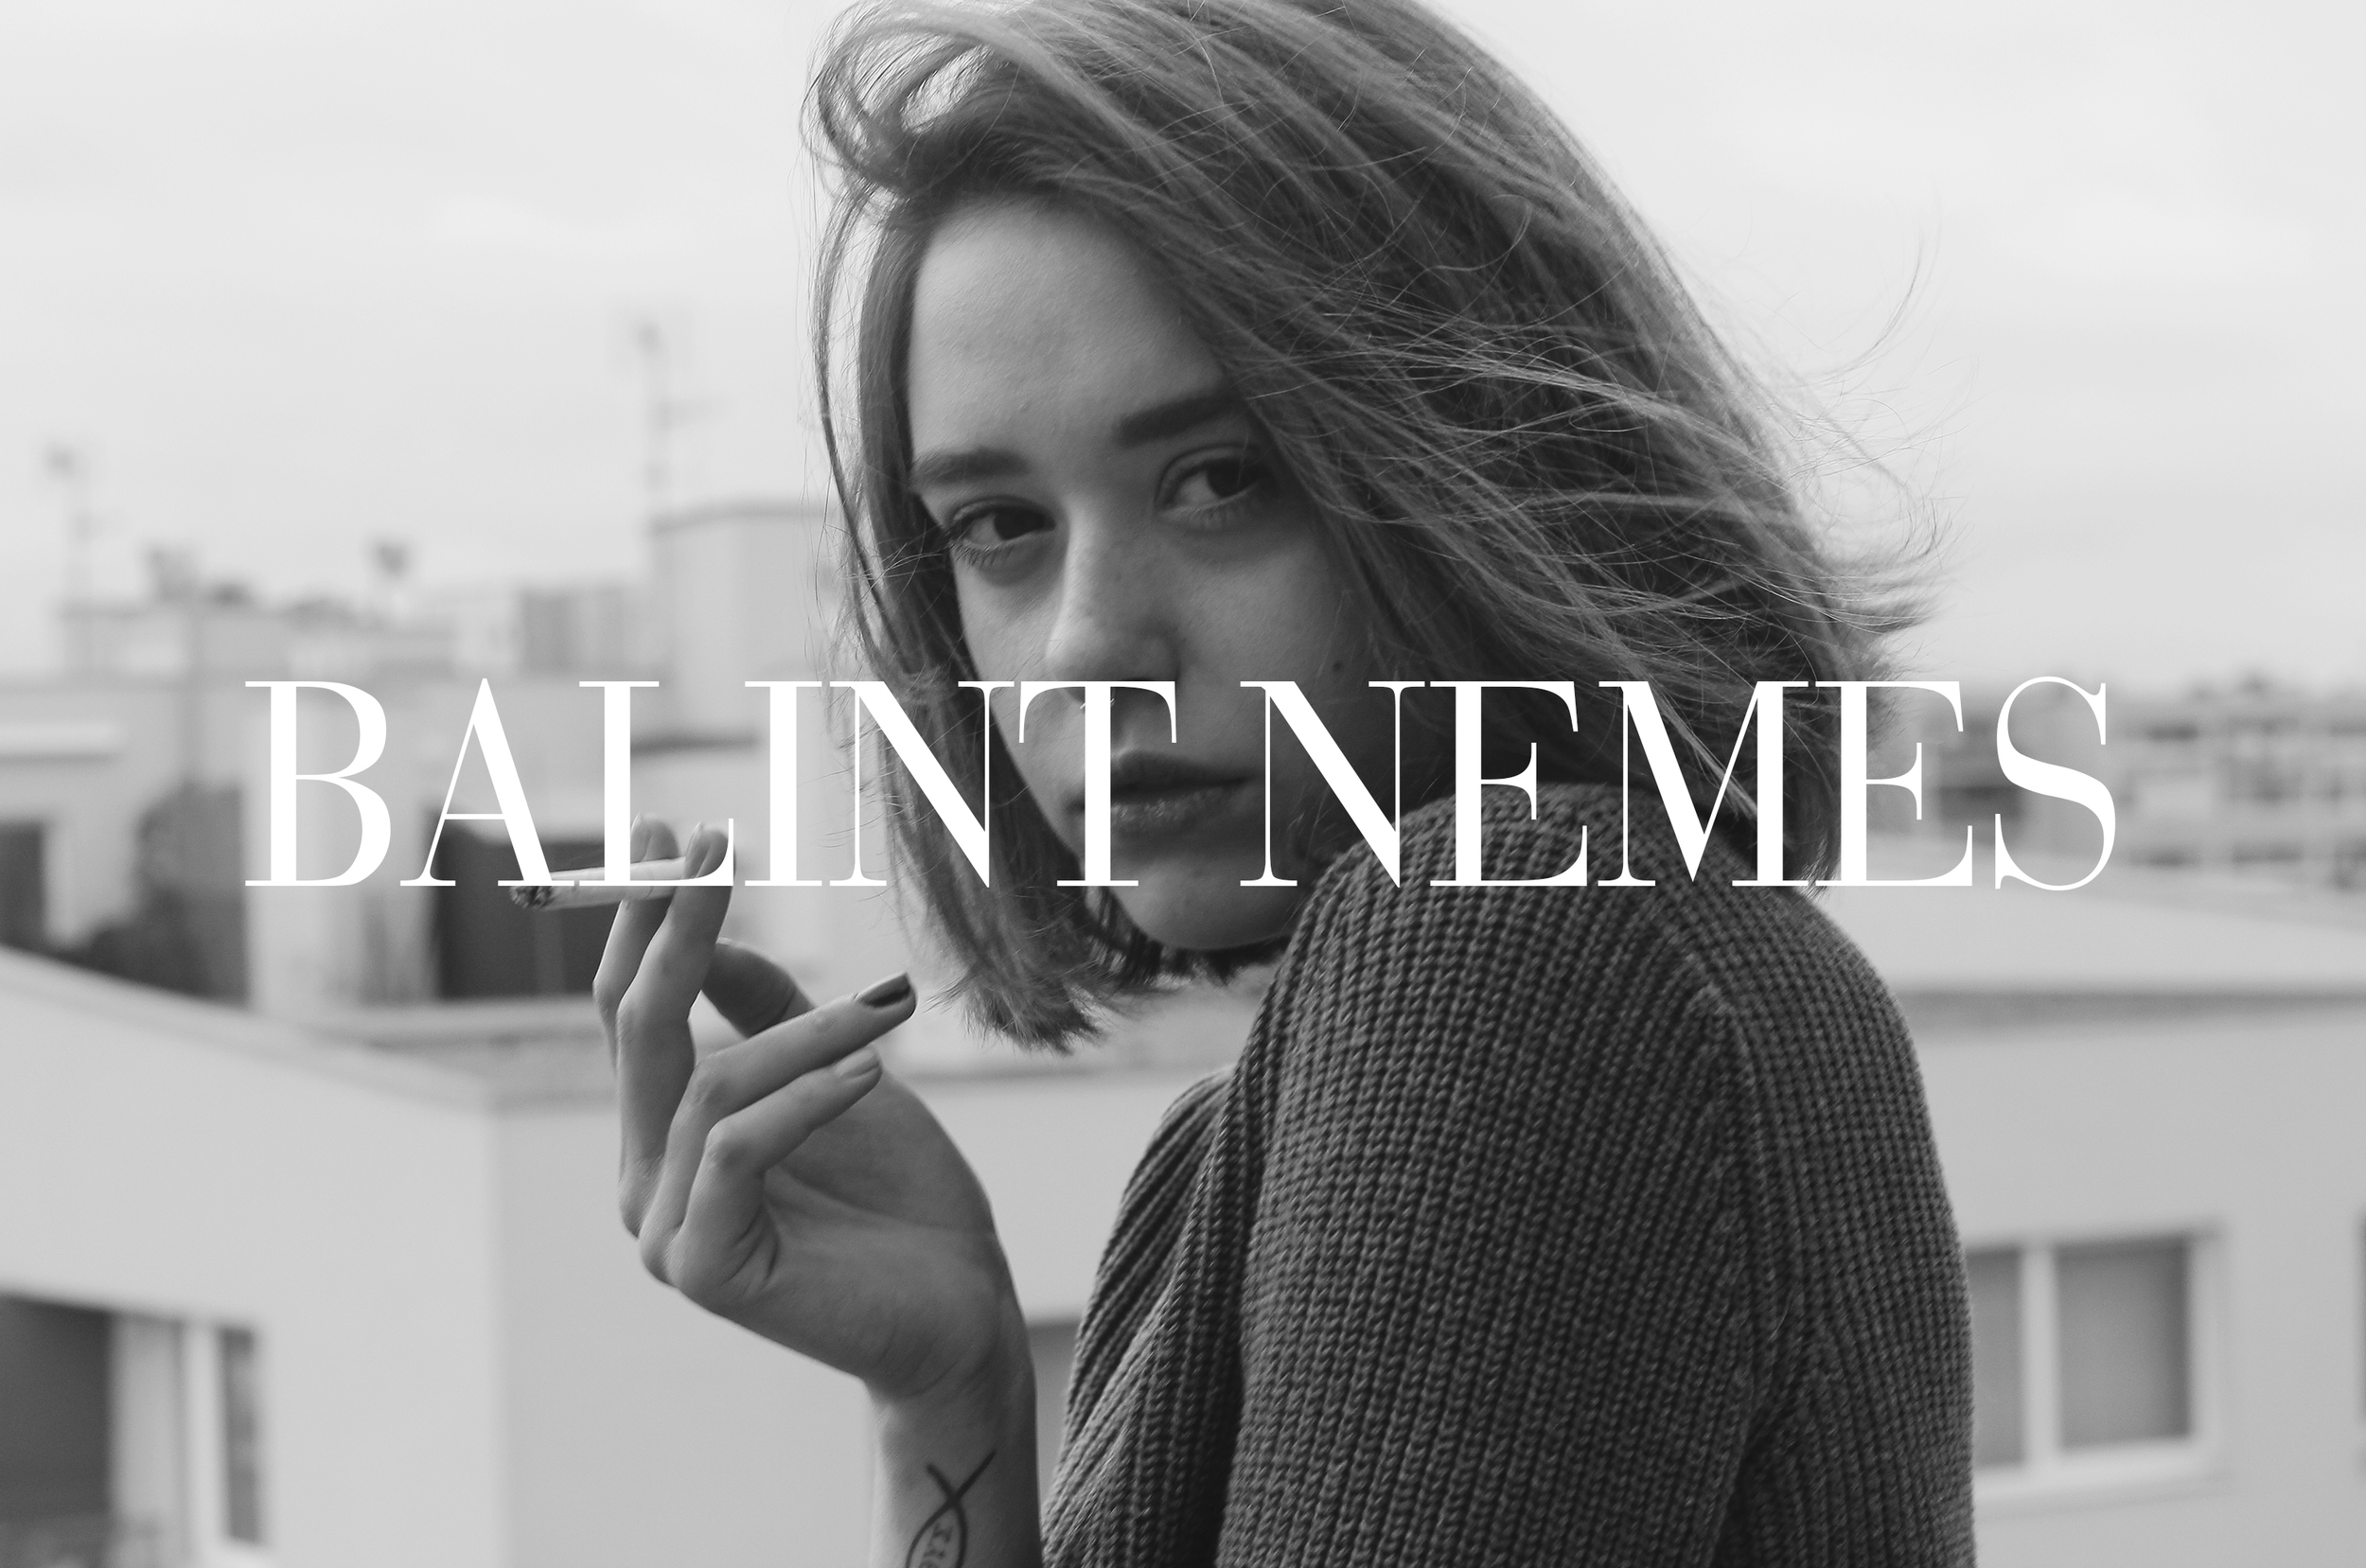 FASHION  Prague-based photographer Balint Nemes spends an afternoon with model, Diana. Capturing the carefree moments of hisKazakhstani muse, a sensual narrativeis shared.